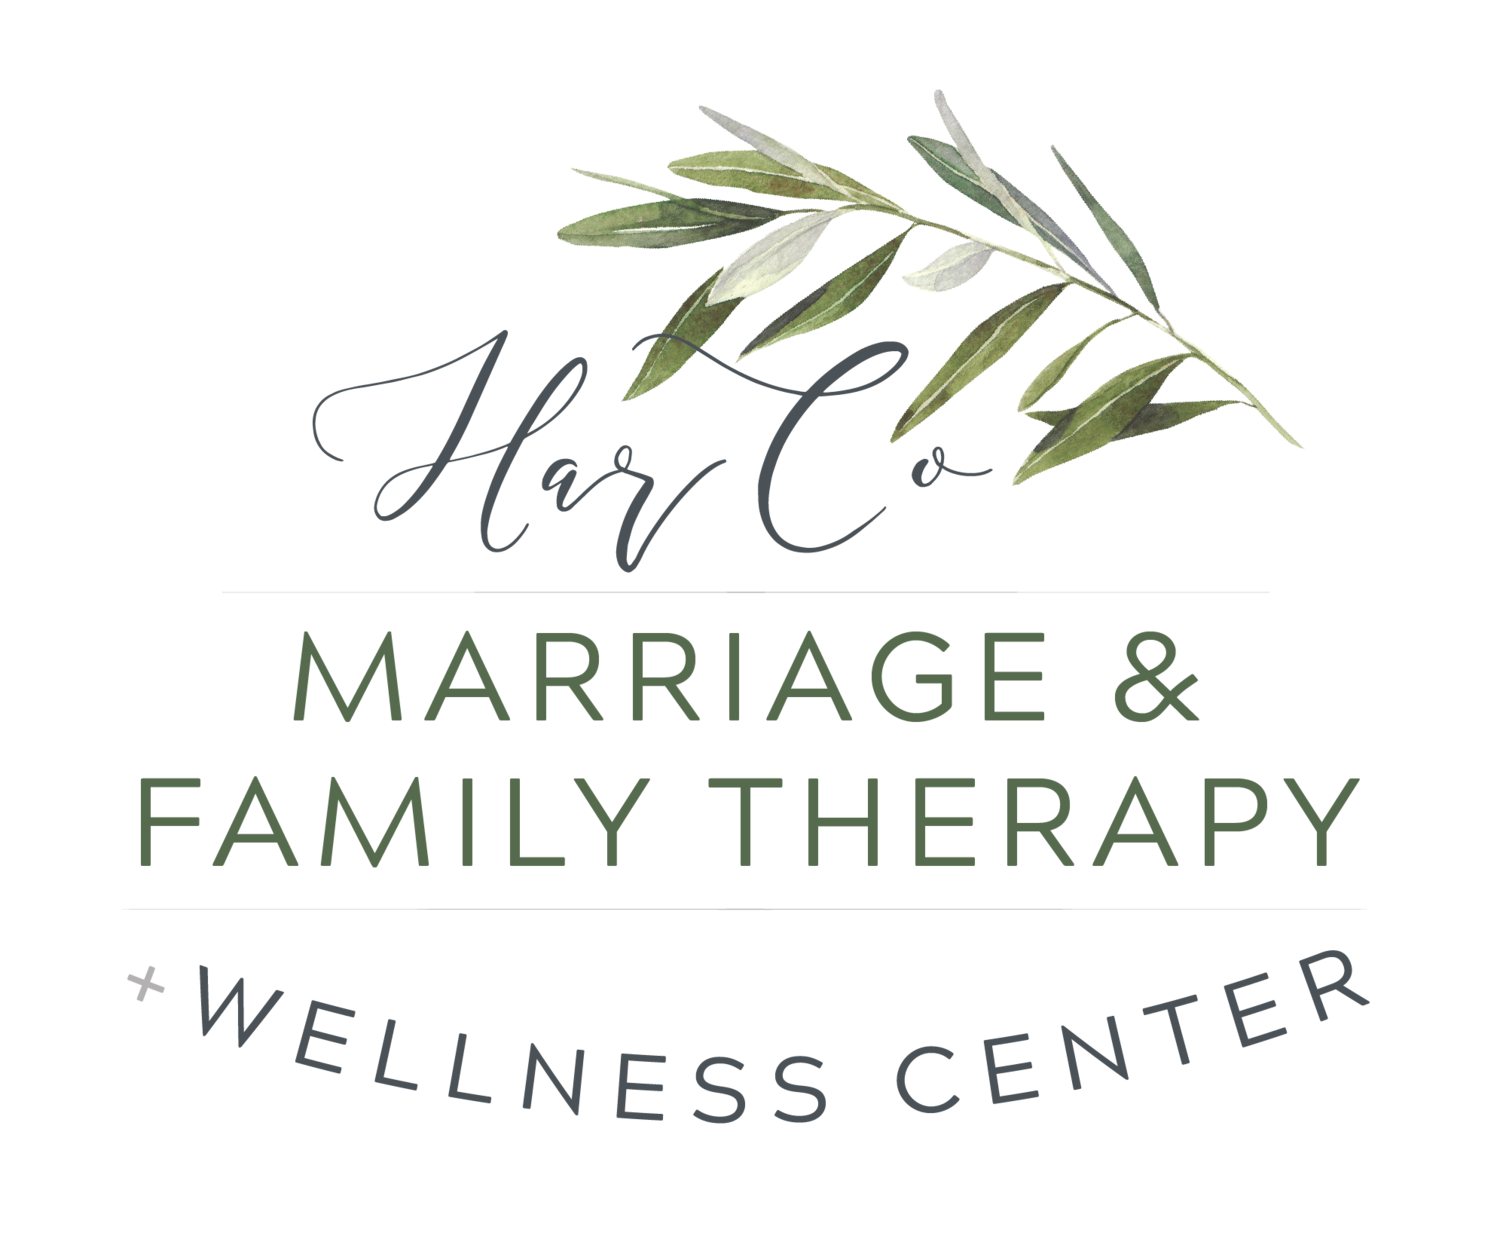 HarCo MFT & Wellness Center | Marriage and Family Therapy, Wellness Center in Bel Air, MD